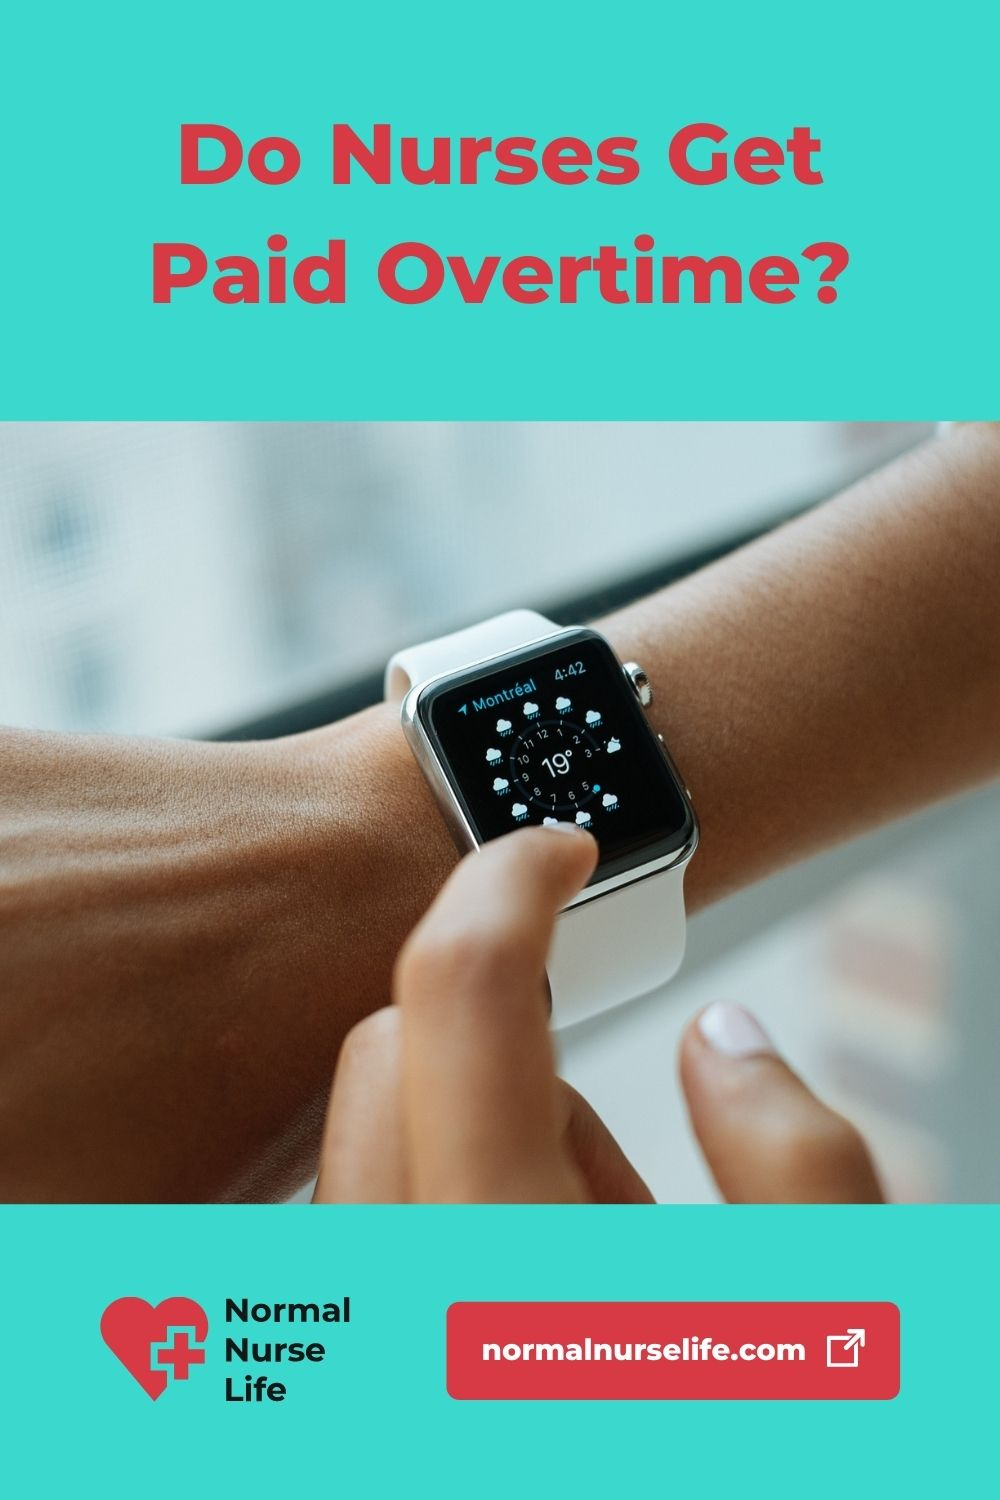 Do nurses get paid overtime or not